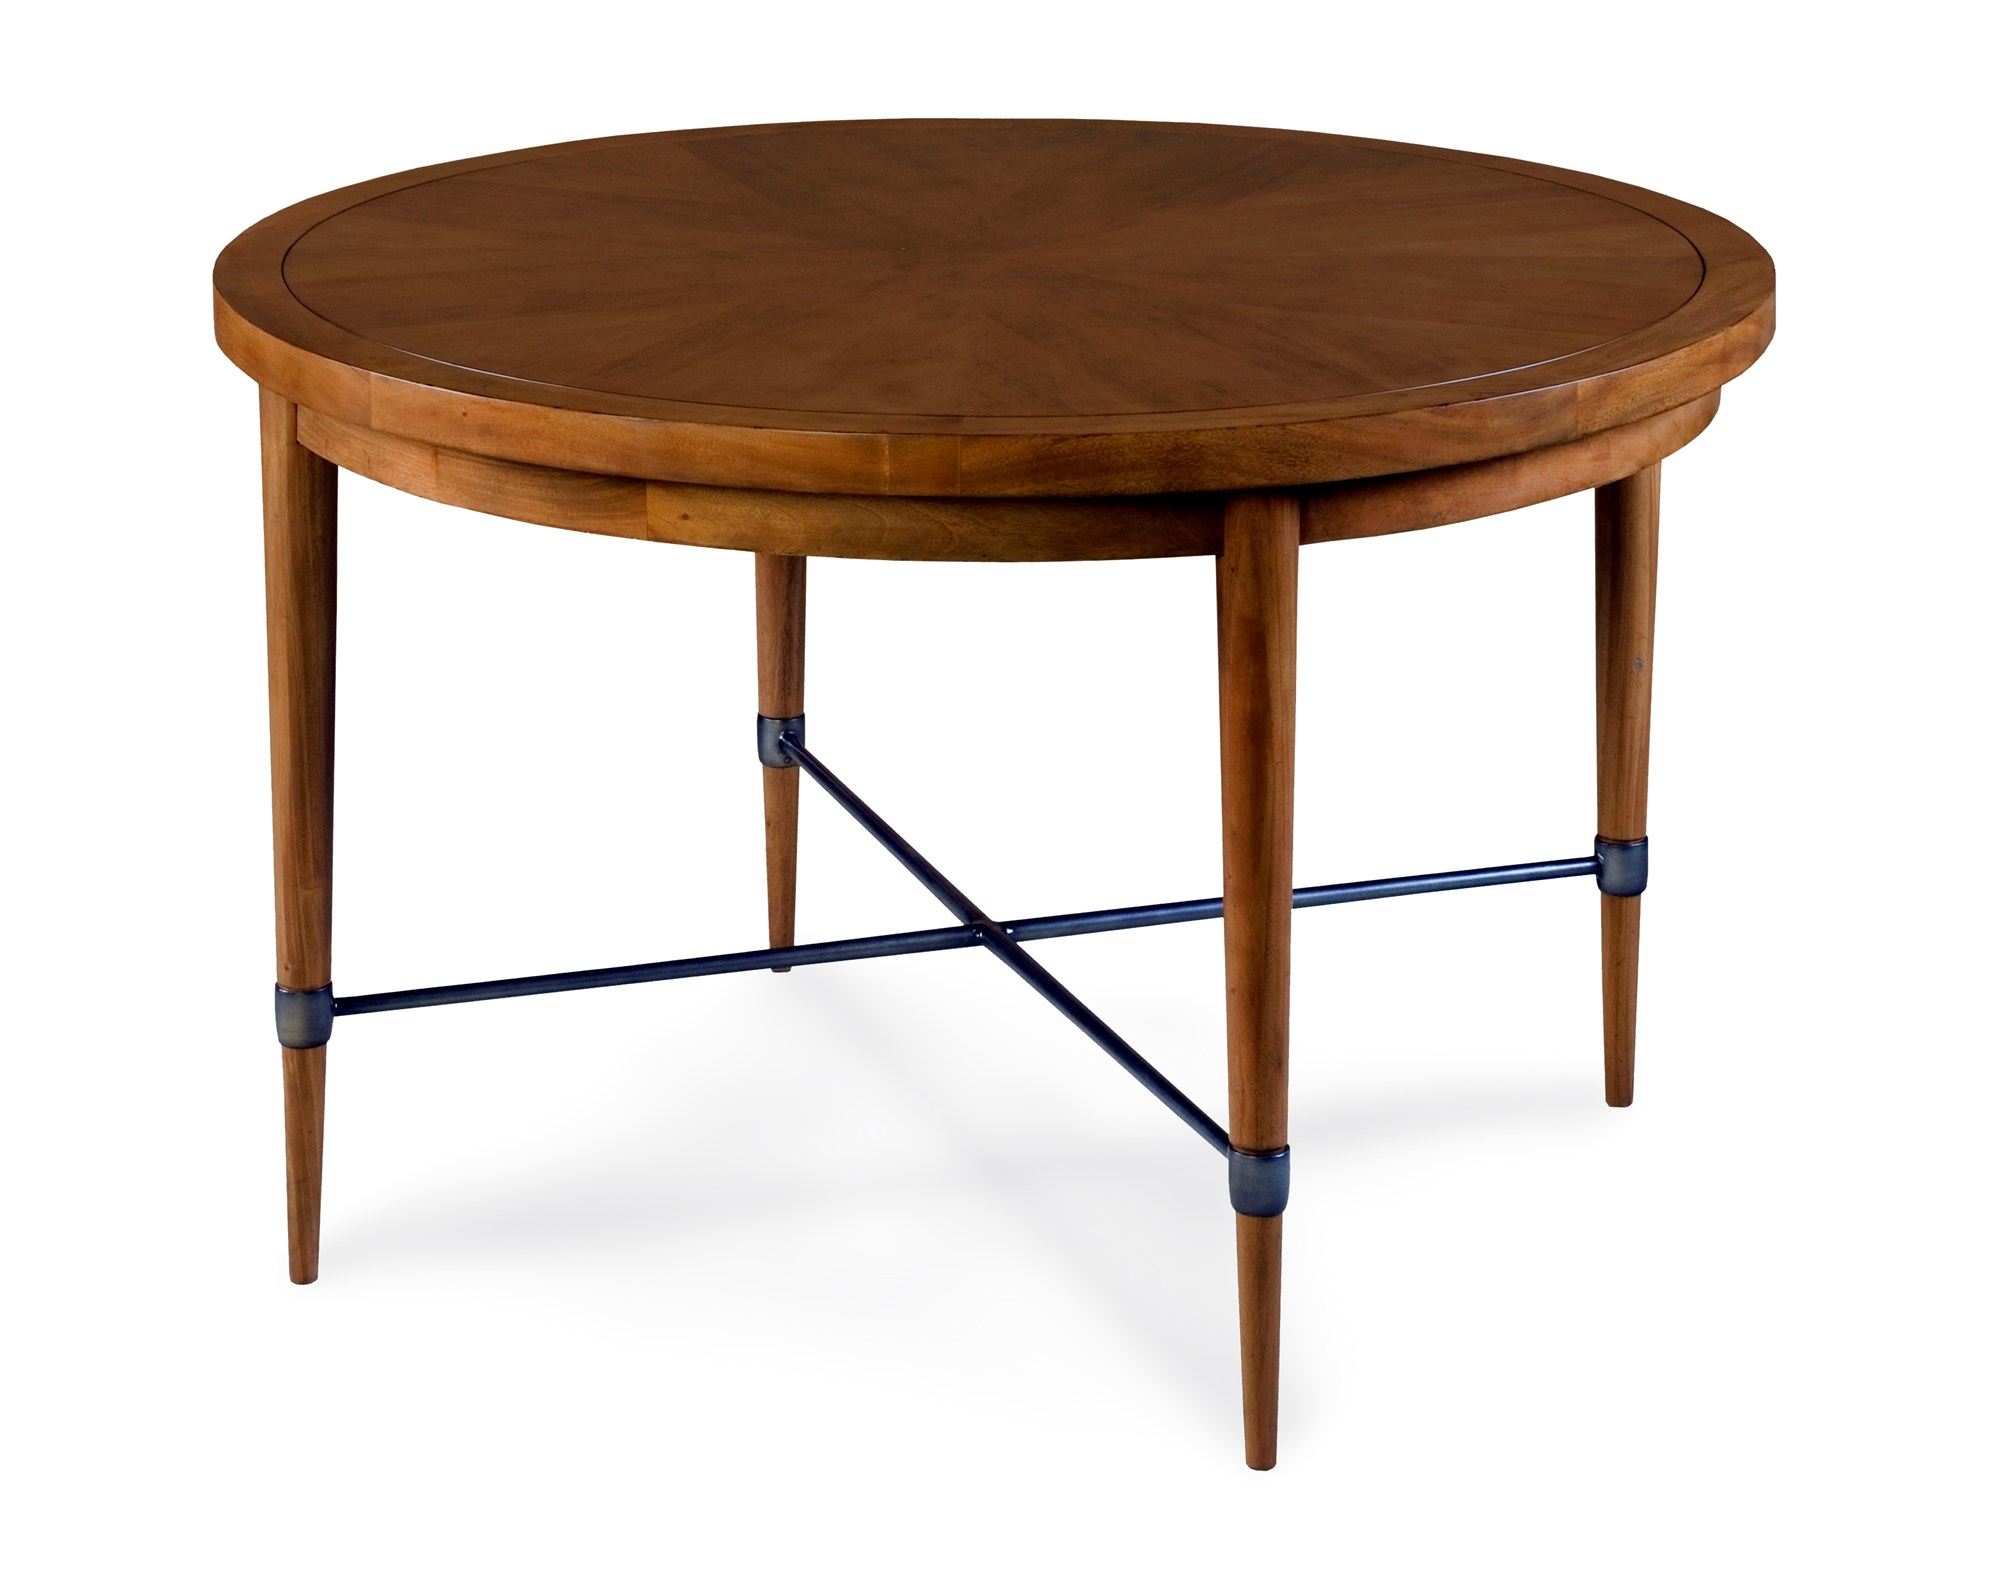 Milo round dining table dining tables dining room robb stucky for Robb and stucky bedroom furniture